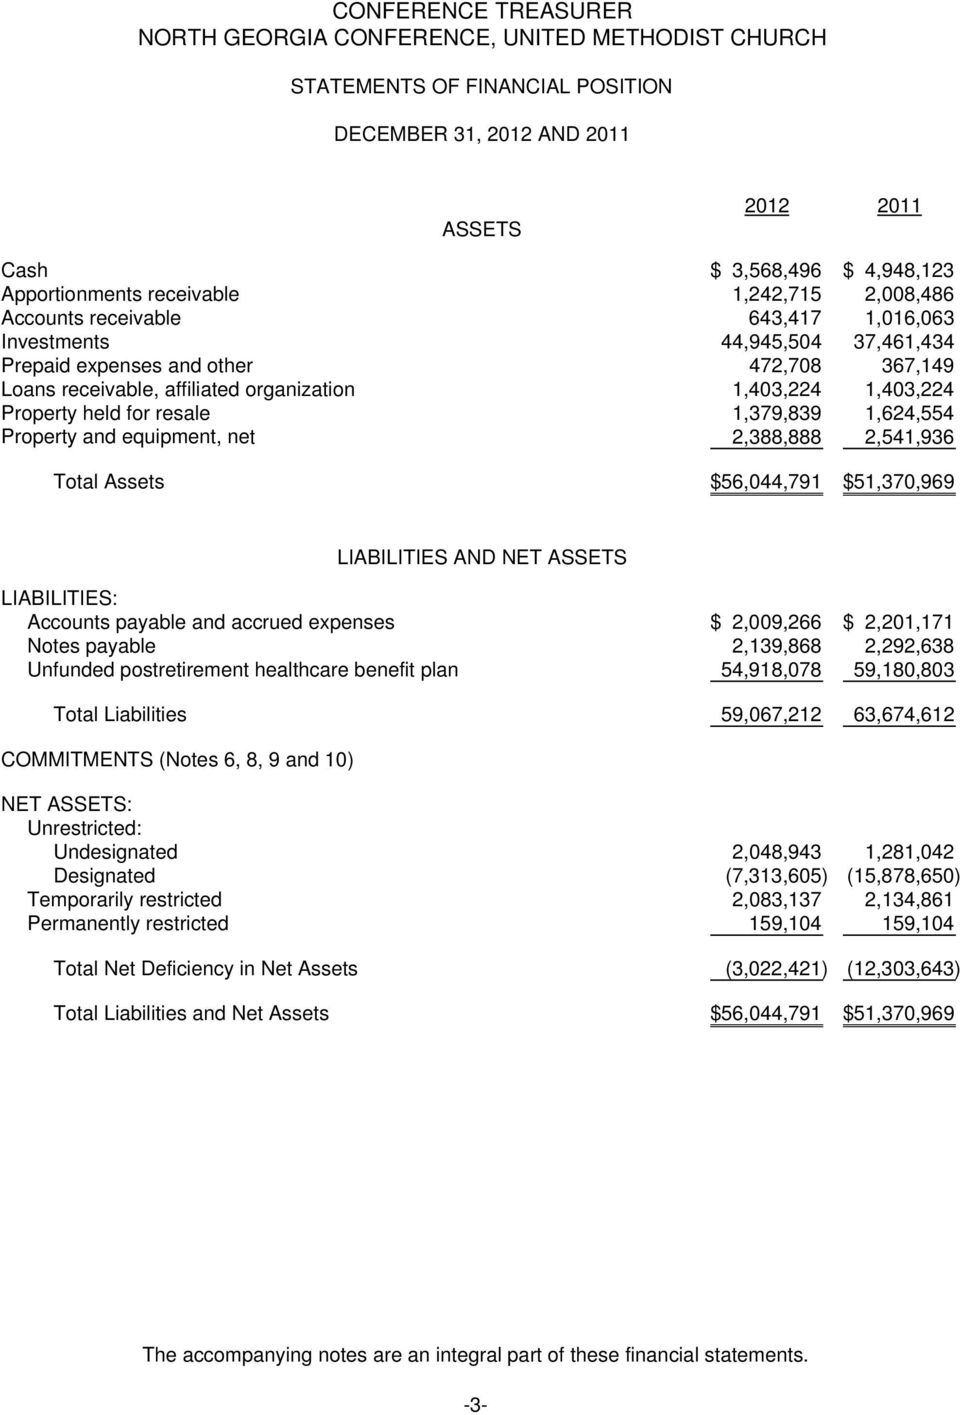 equipment, net 2,388,888 2,541,936 Total Assets $ 56,044,791 $ 51,370,969 LIABILITIES: Accounts payable and accrued expenses $ 2,009,266 $ 2,201,171 Notes payable 2,139,868 2,292,638 Unfunded